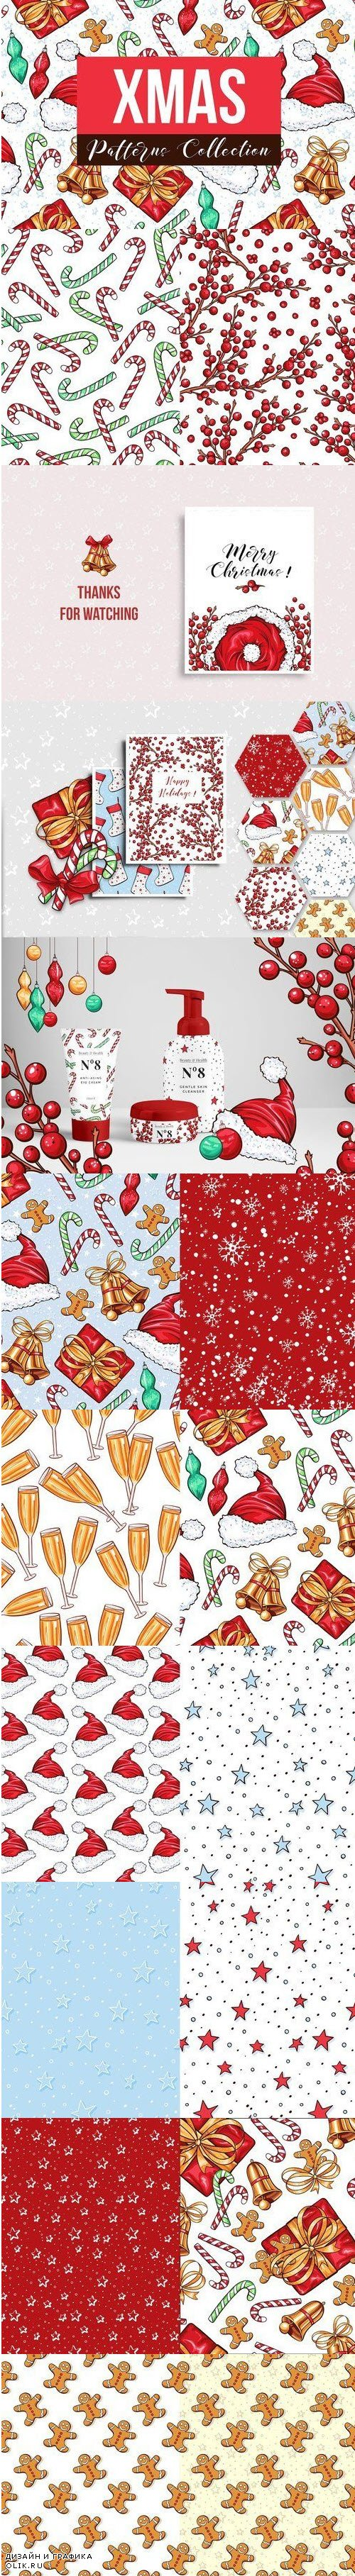 Big Xmas Patterns Collection - 3981105